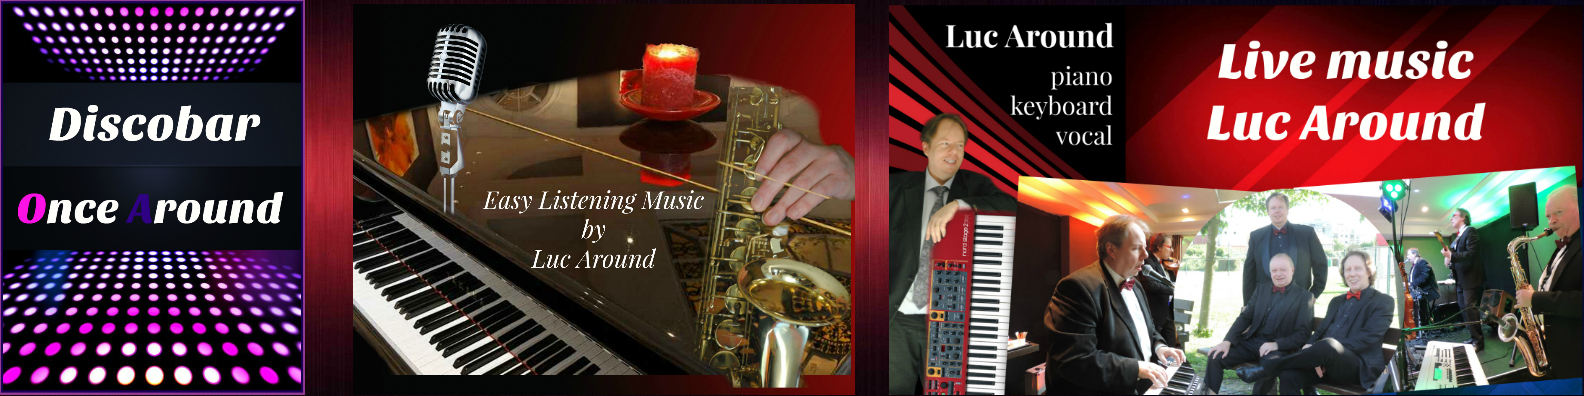 Livemuziek Luc Around cover